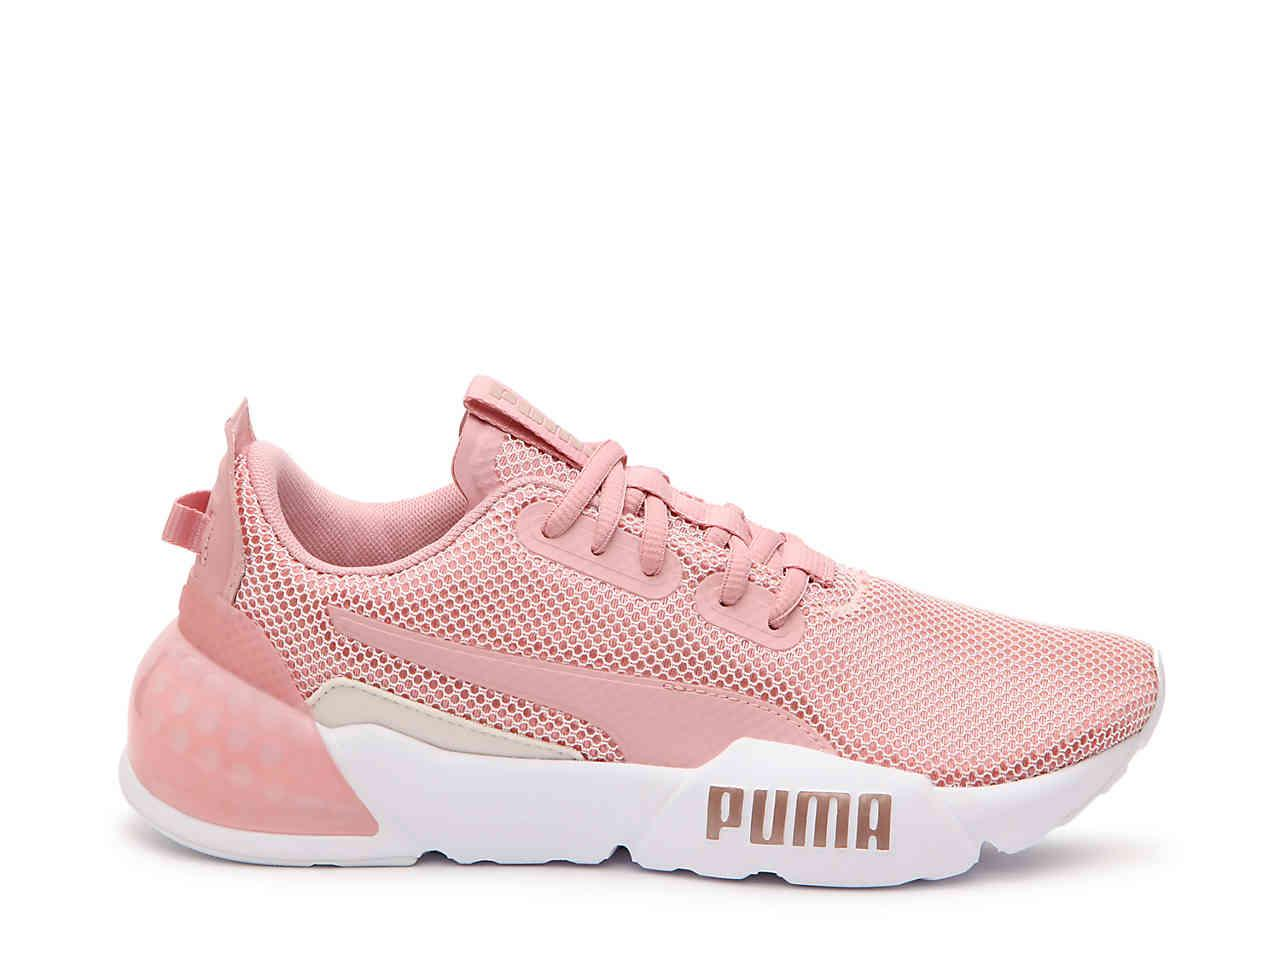 PUMA Synthetic Cell Phase Sneaker in